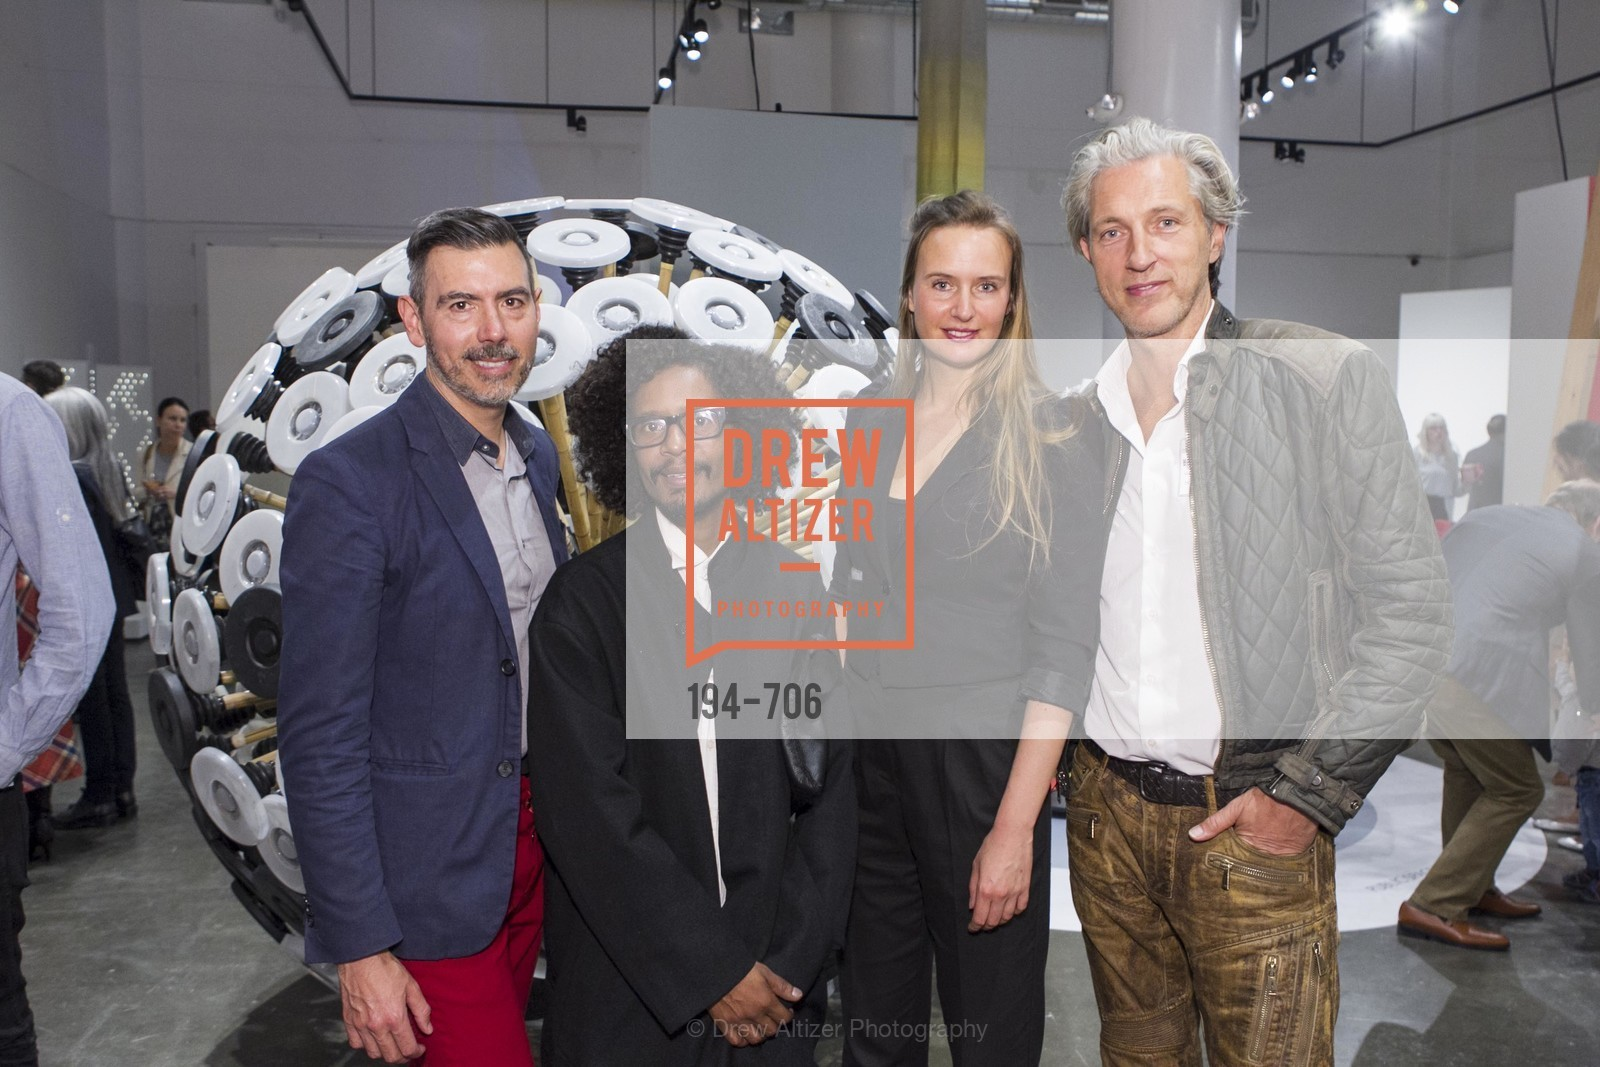 John Macy, Yani Alexi Dominguez, Lonneke Gordijn, Marcel Wanders, Exhibit Opening at the MUSEUM OF CRAFT AND DESIGN - Hands Off: New Dutch Design at the Confluence of Technology & Craft, US, May 8th, 2015,Drew Altizer, Drew Altizer Photography, full-service agency, private events, San Francisco photographer, photographer california